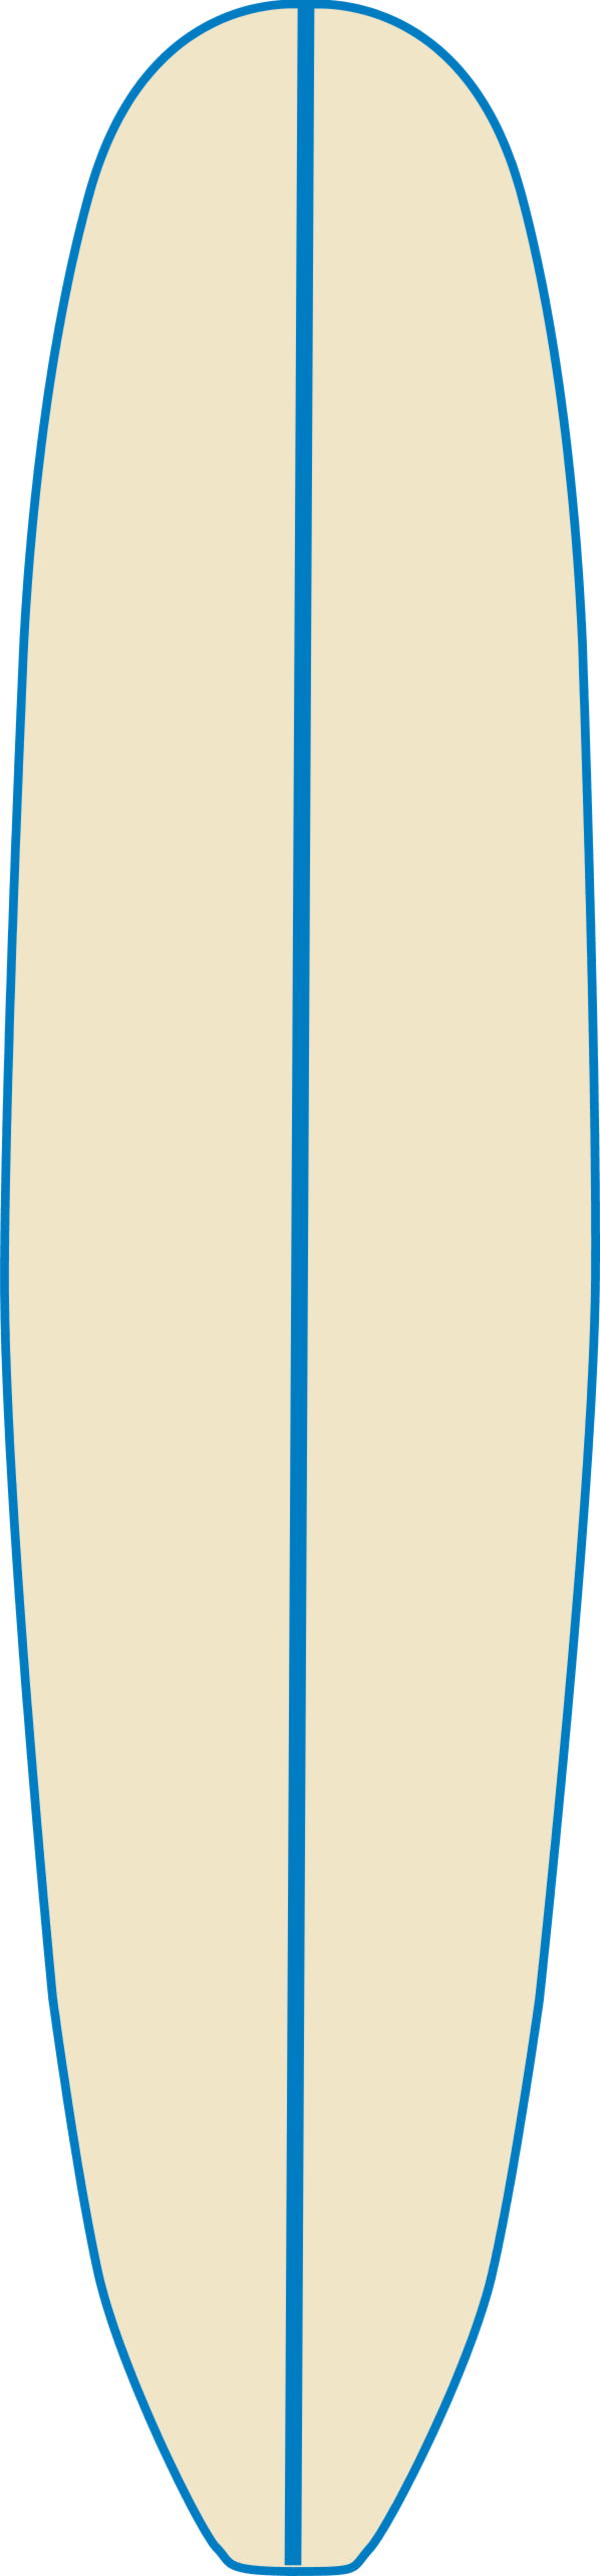 Surfboard clipart outline #7